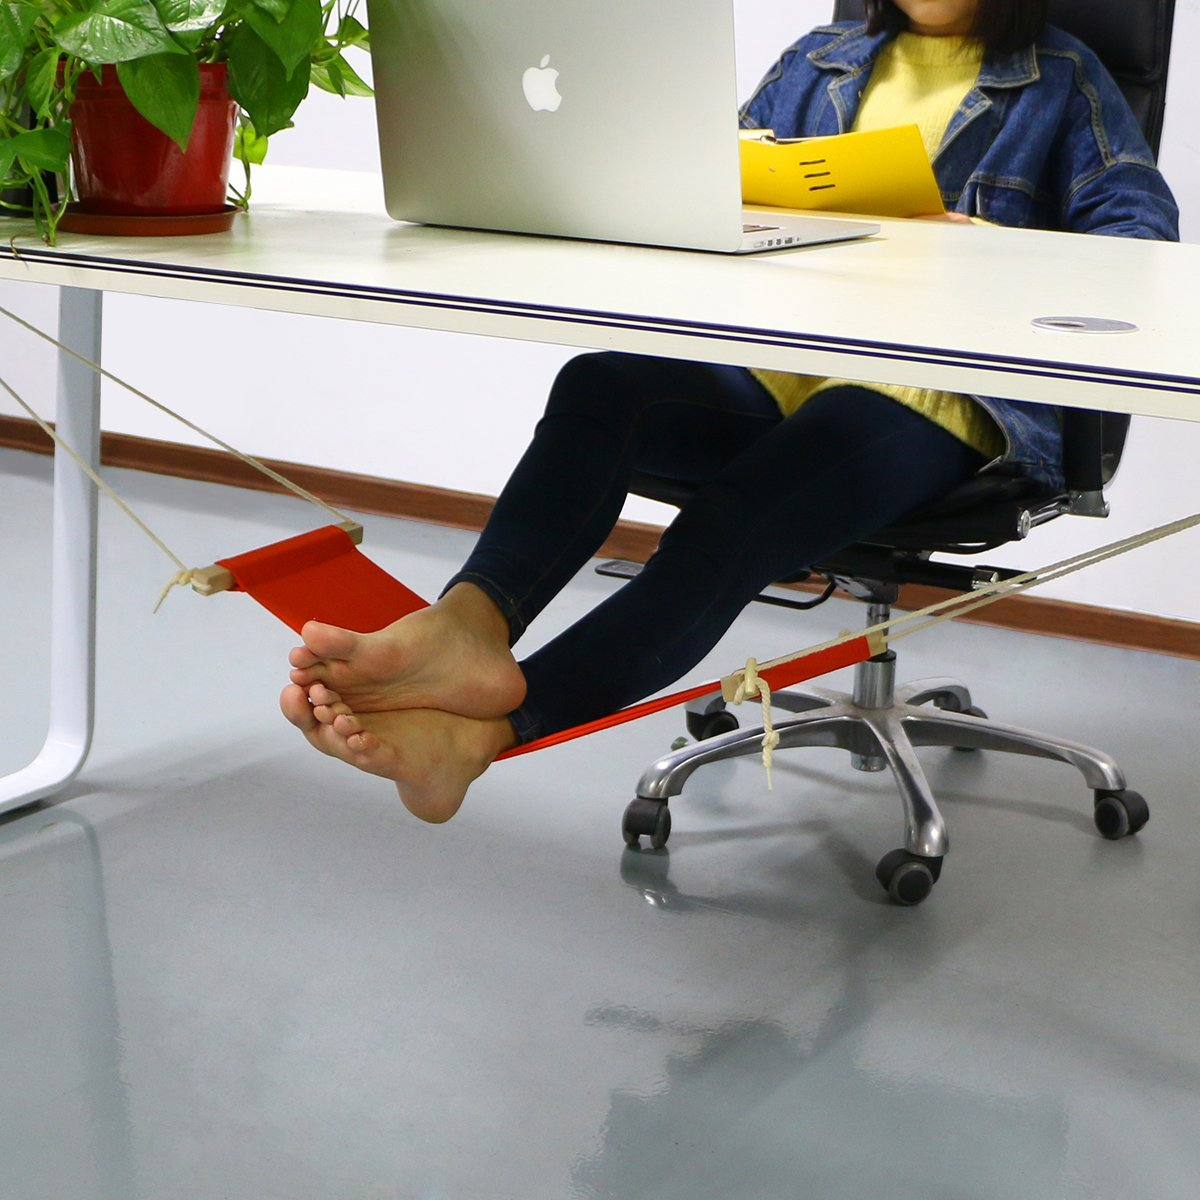 wood rest footrest office feet benefits the mini stand adjustable desk foot under renovation for buy